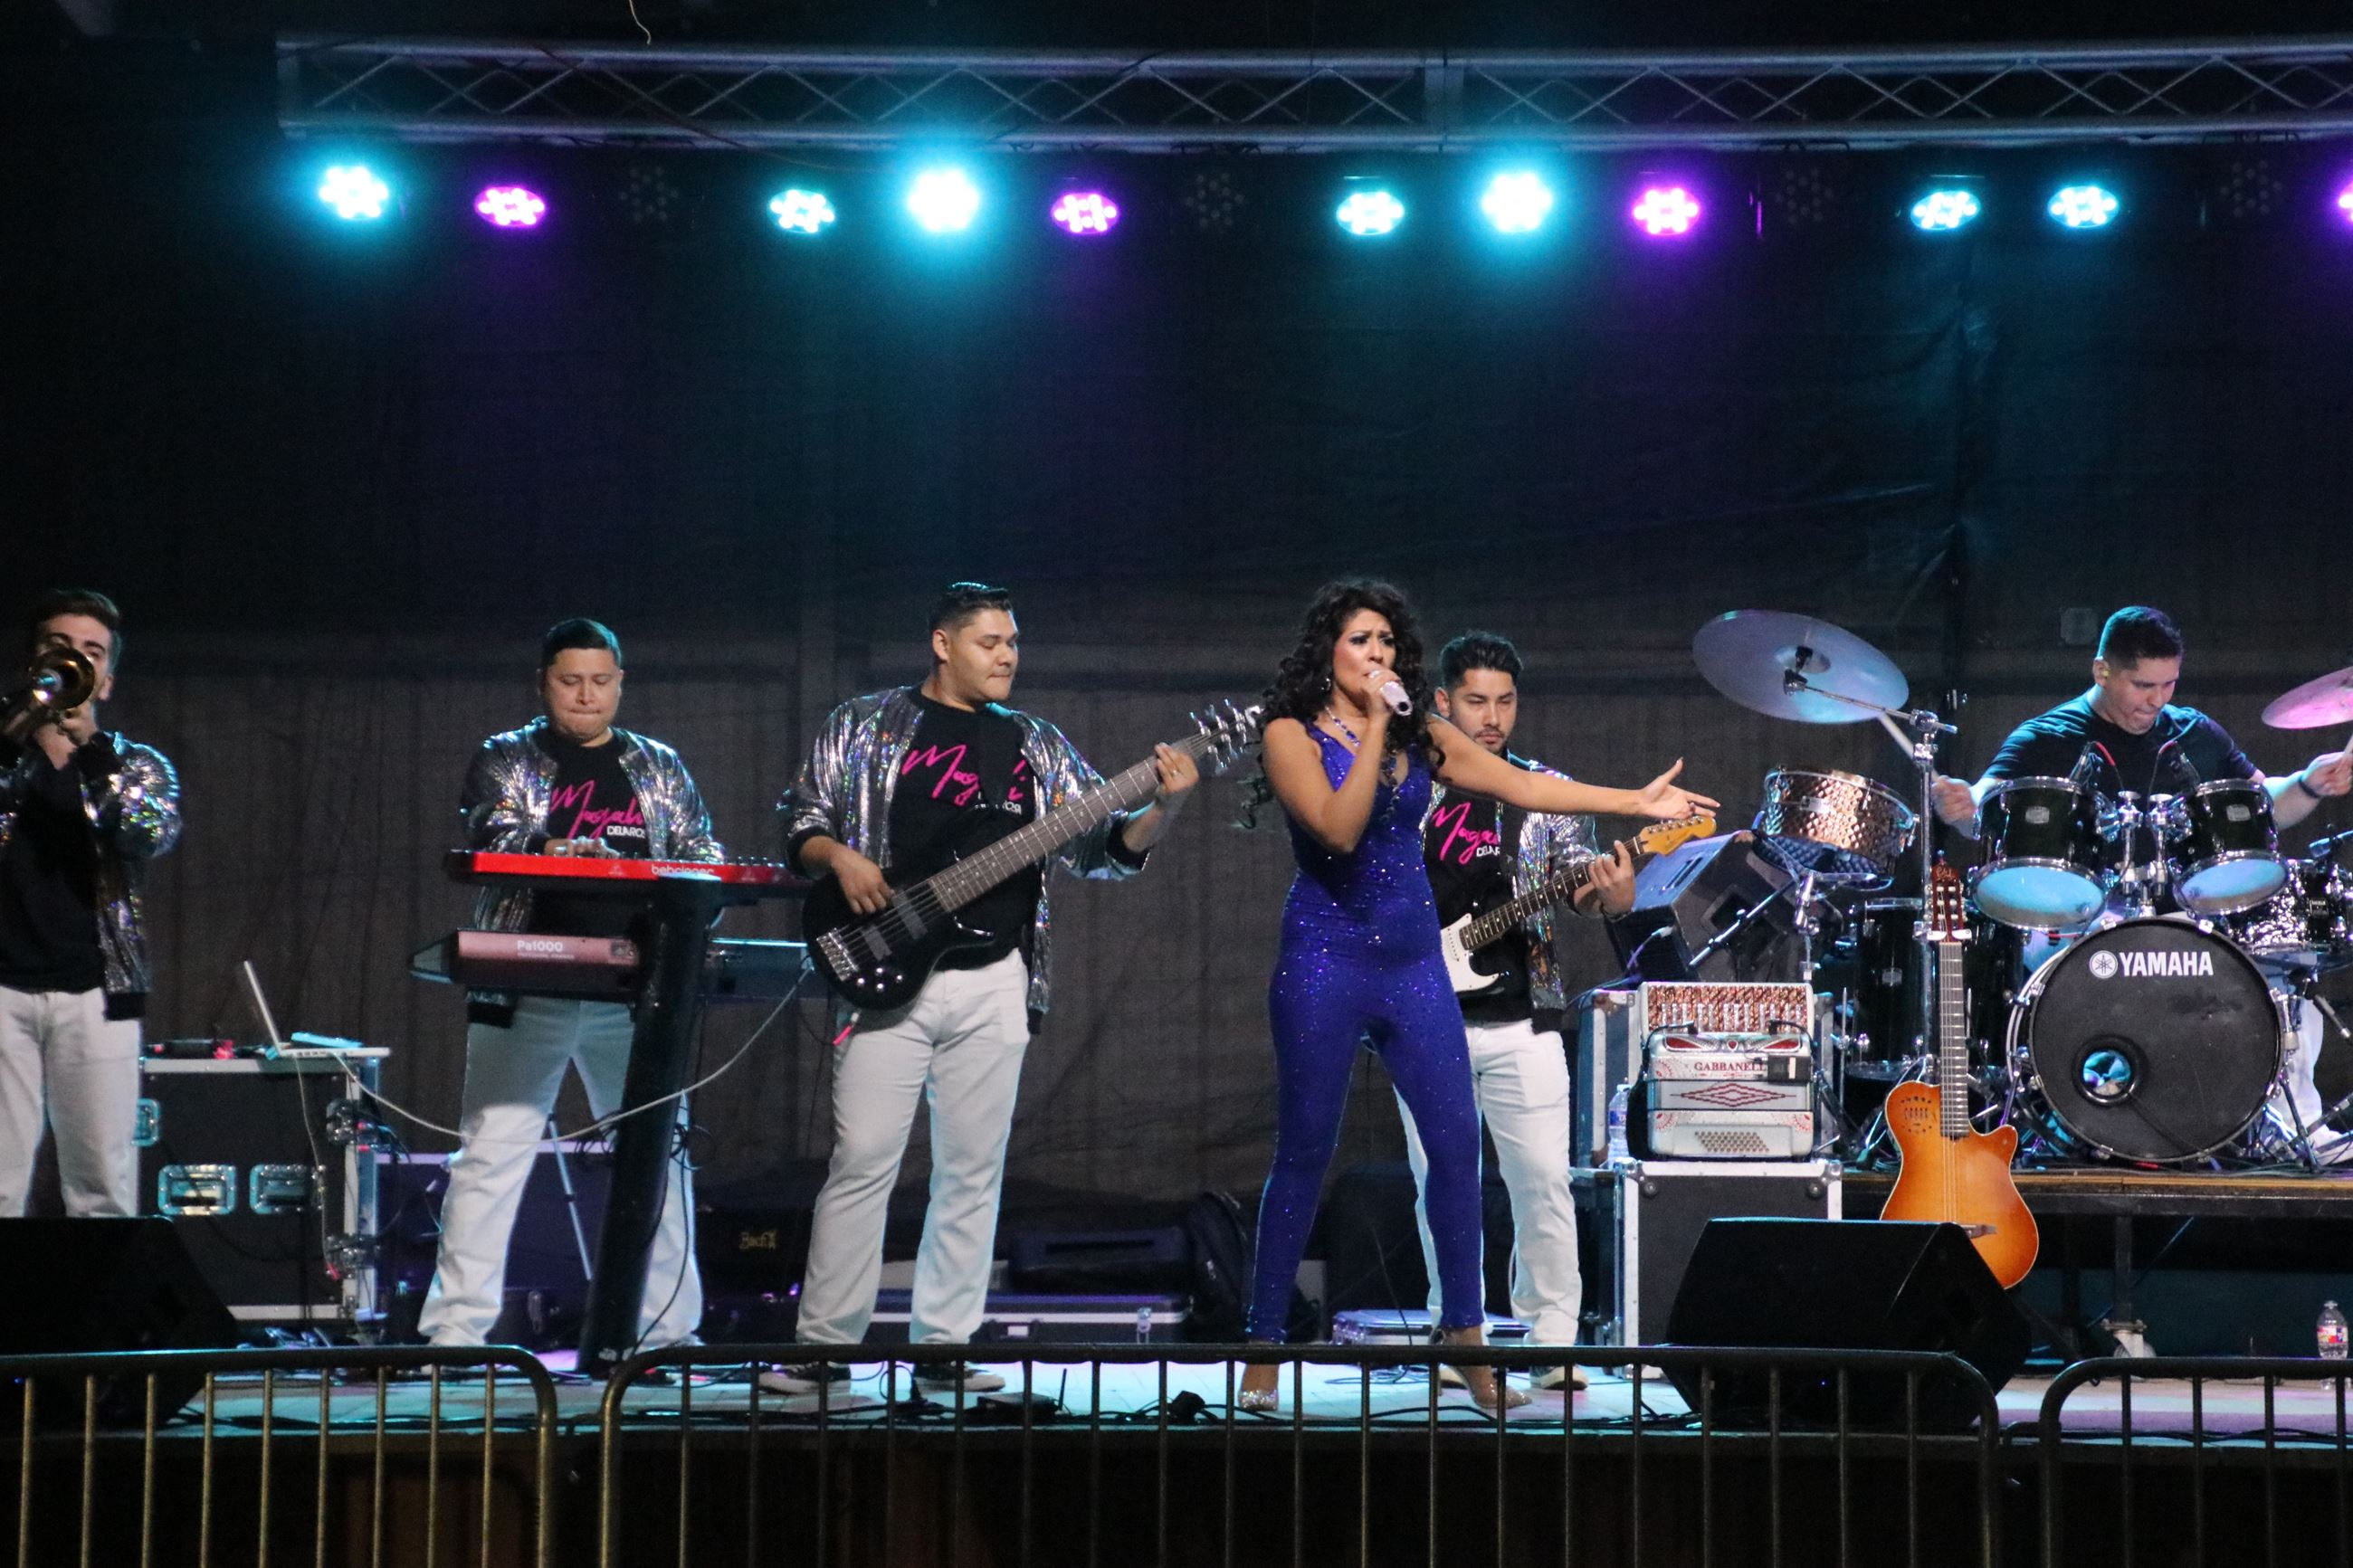 Maglia DeLaRosa at 2020 Rockdale Fair & Rodeo Tejano Night